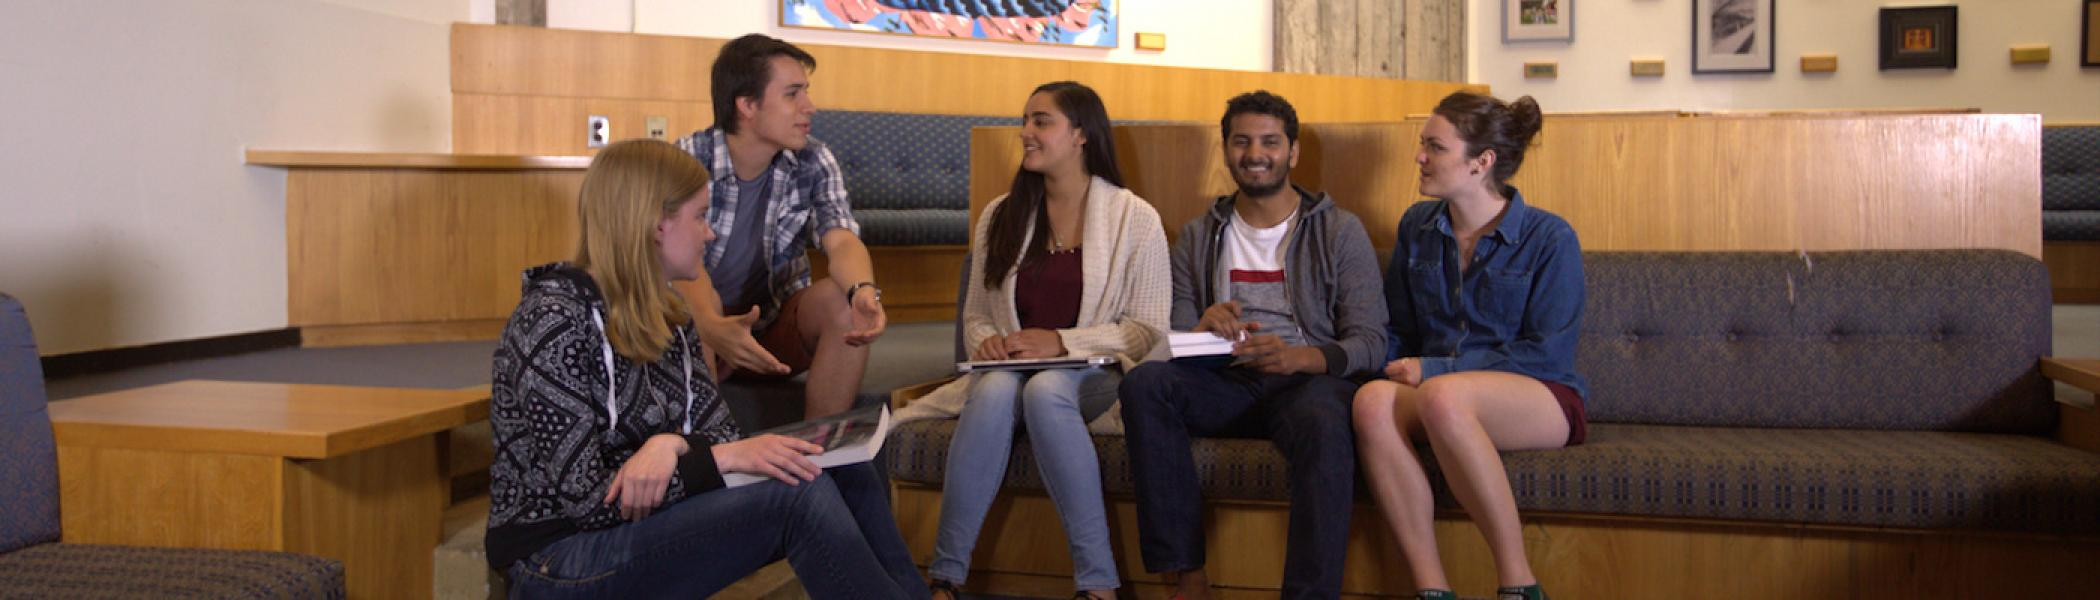 A group of students sitting on a sofa talking to each other